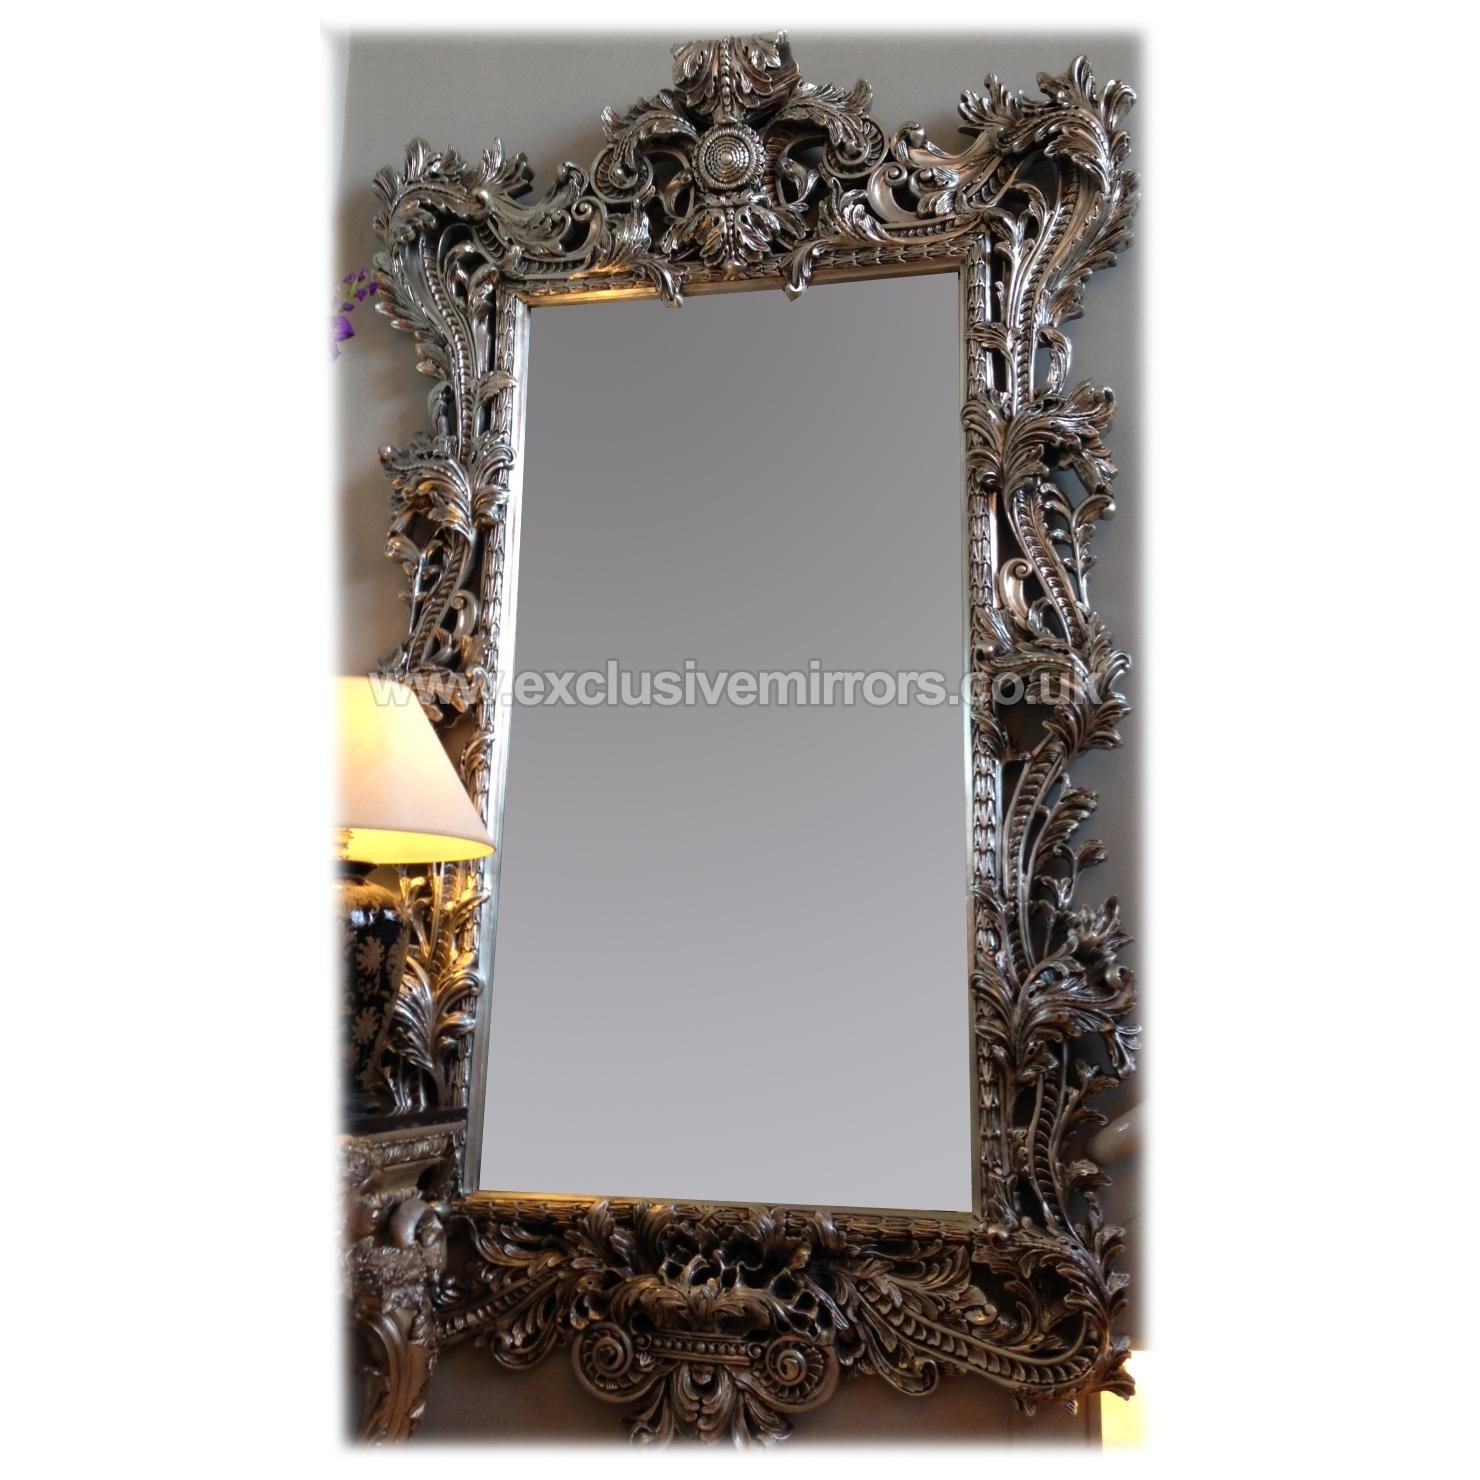 Extra Large Wall Mirrors 109 Cute Interior And Large Gold Very For Silver Ornate Wall Mirror (View 17 of 20)